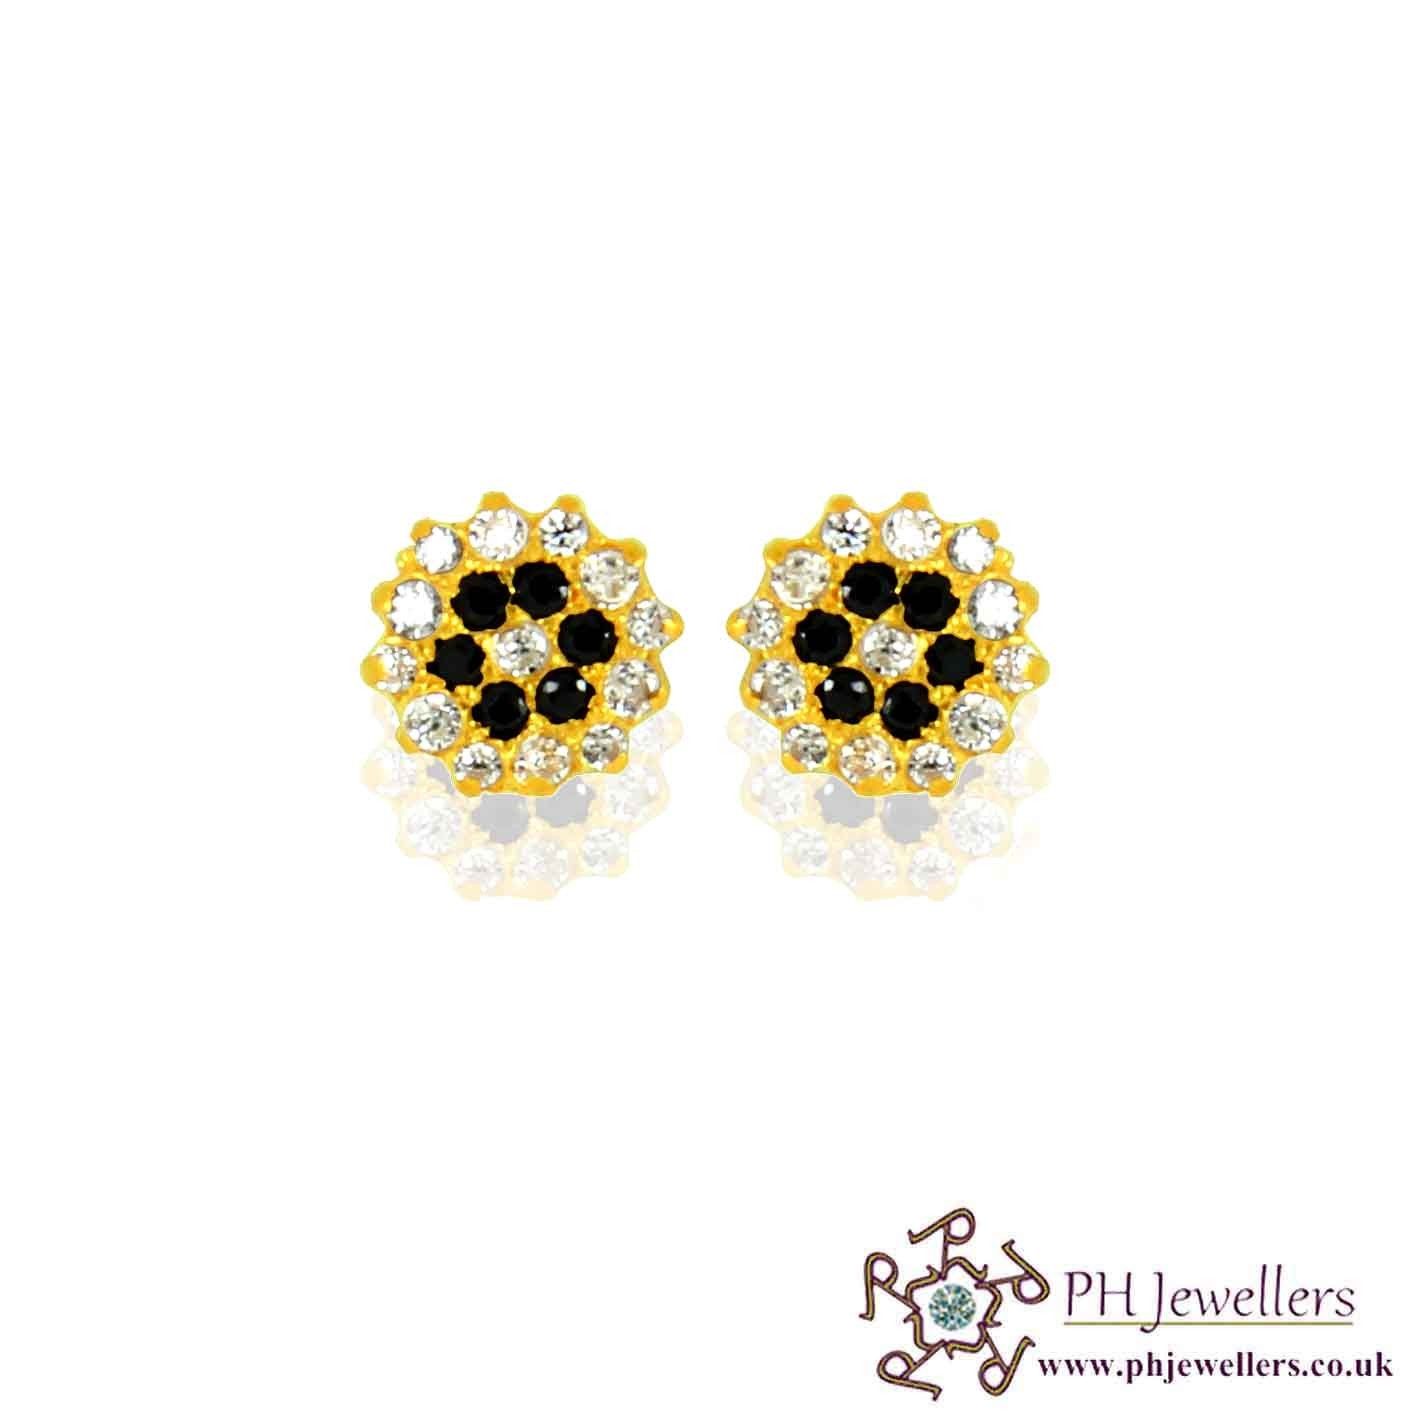 22ct 916 Yellow Gold Black/ White Earring CZ SE47